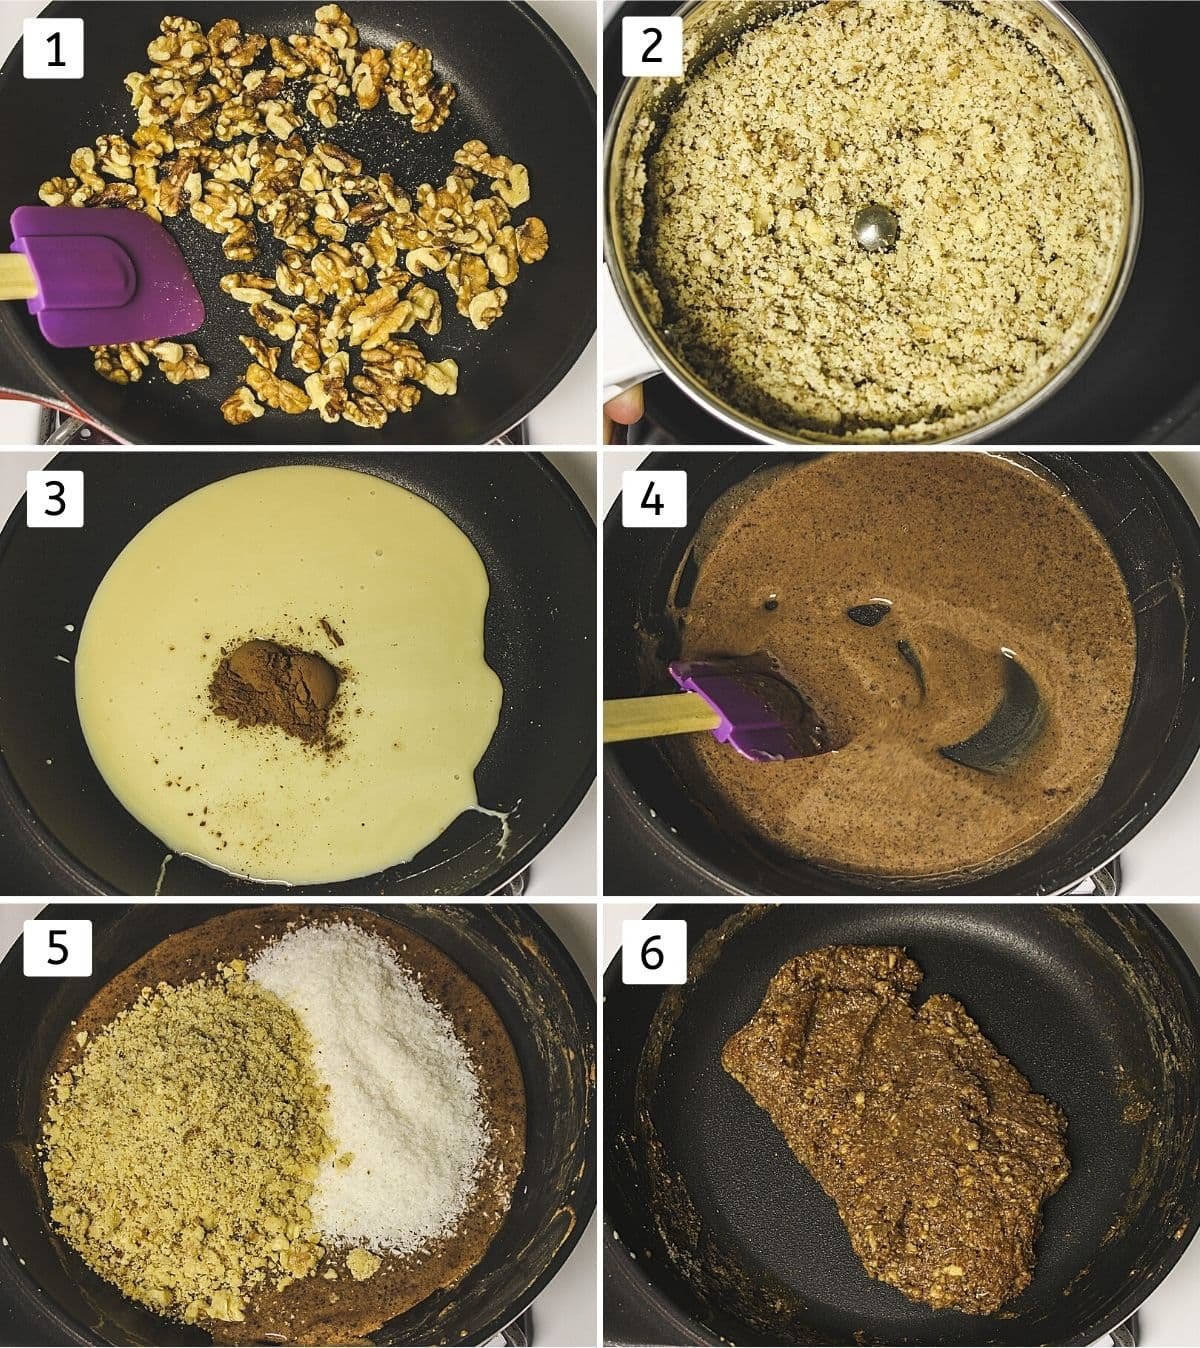 collage of 6 steps showing roasting walnuts, coarsely ground, condensed milk and cocoa powder in a pan, mixed, walnut, coconut added, cooked.